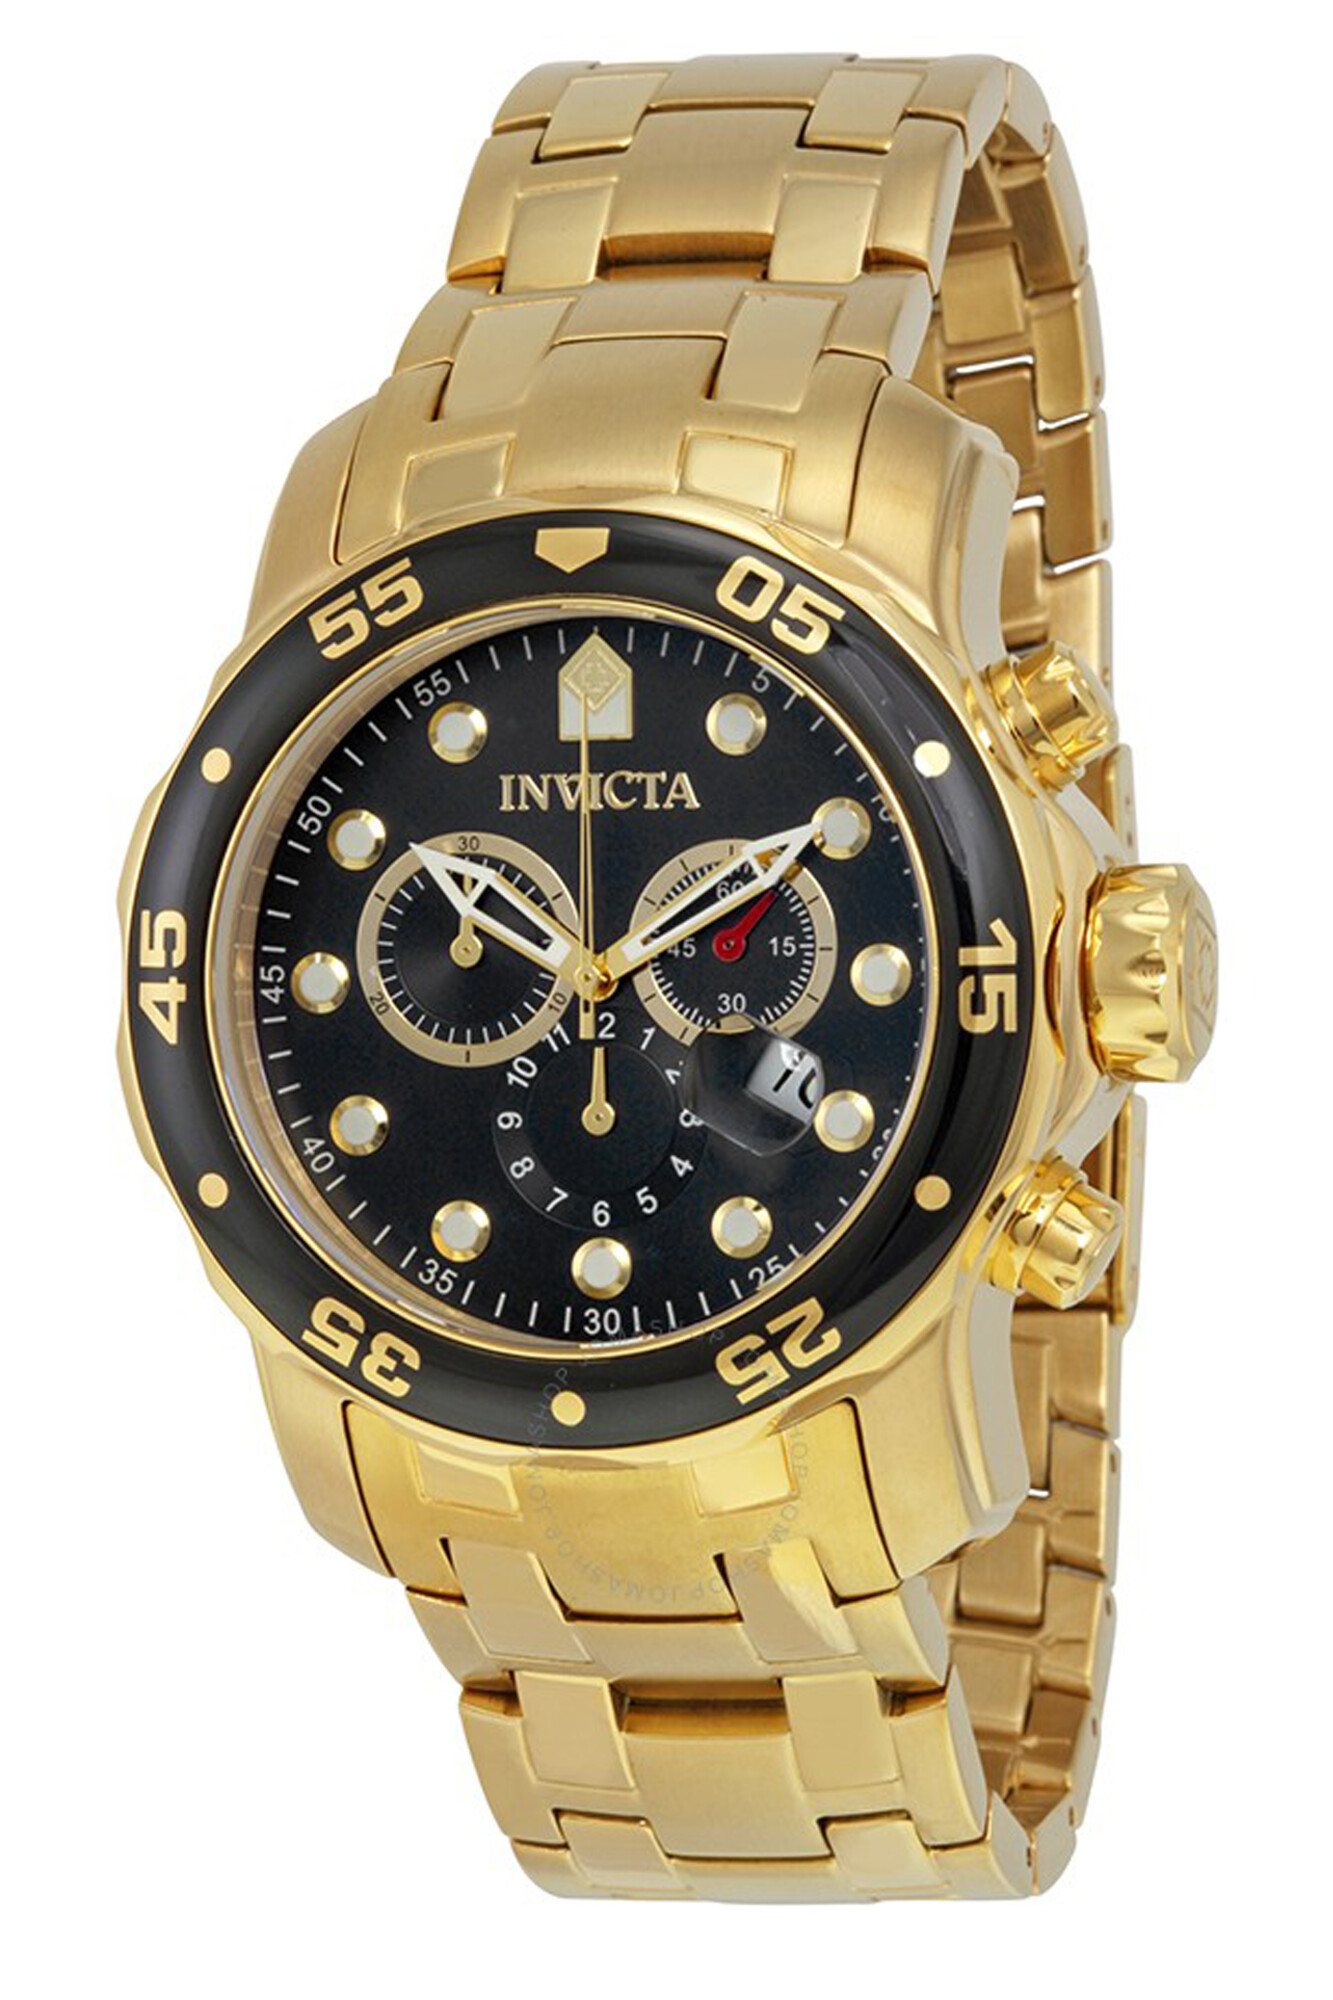 Invicta Men's Pro Diver 0072 Gold Stainless-Steel Plated Swiss Parts Chronograph Dress Watch